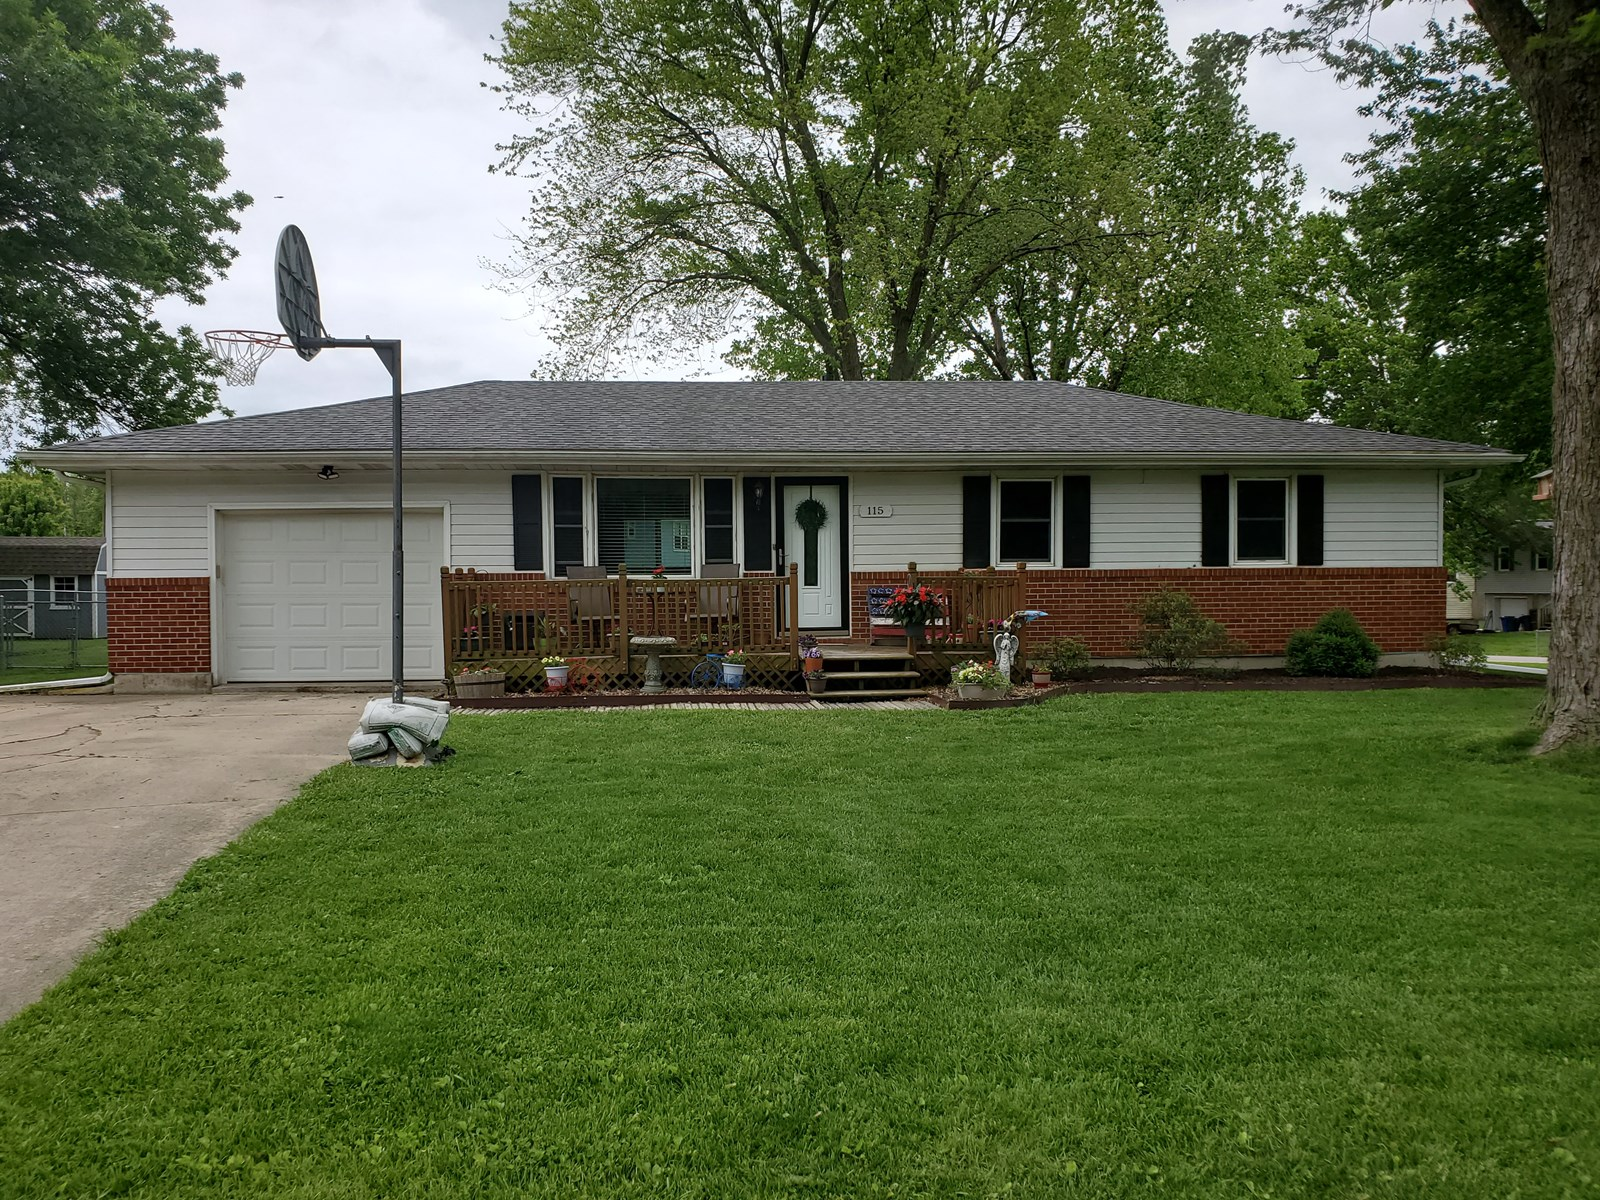 Windsor Mo Home For Sale, Henry County